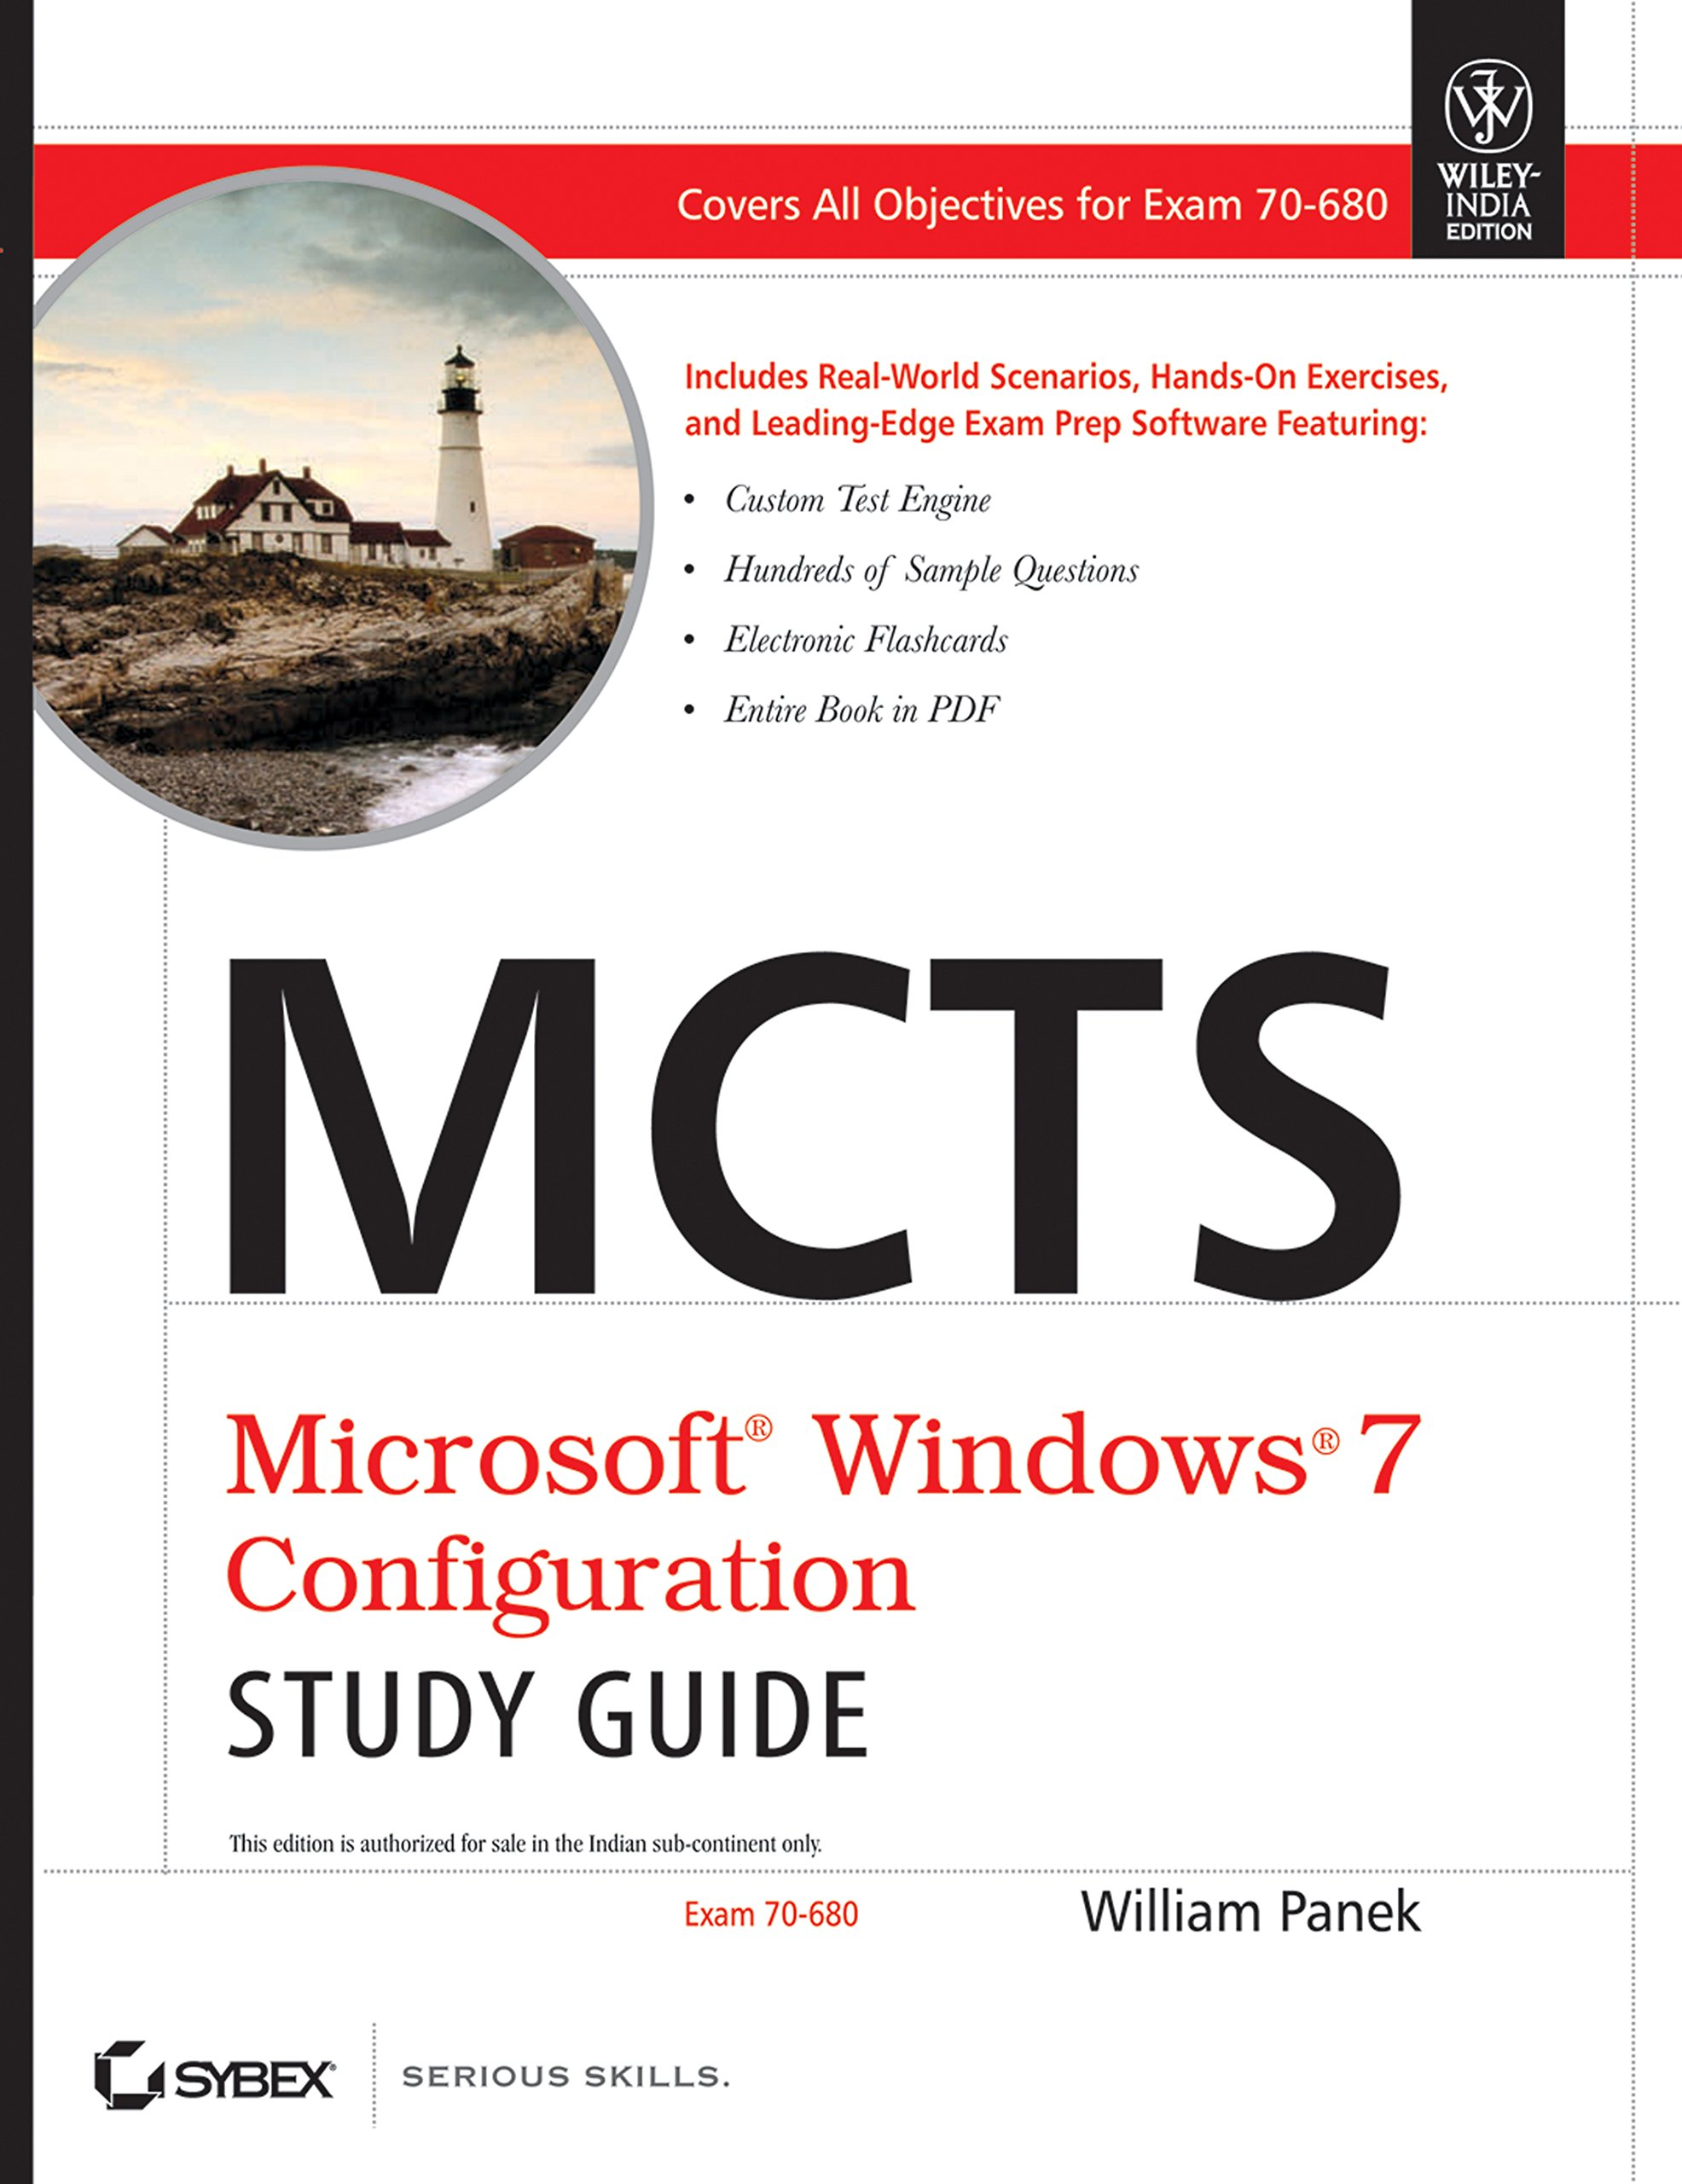 Buy MCTS Microsoft Windows 7 Configuration Study Guide: Exam 70-680 Book  Online at Low Prices in India | MCTS Microsoft Windows 7 Configuration  Study Guide: ...